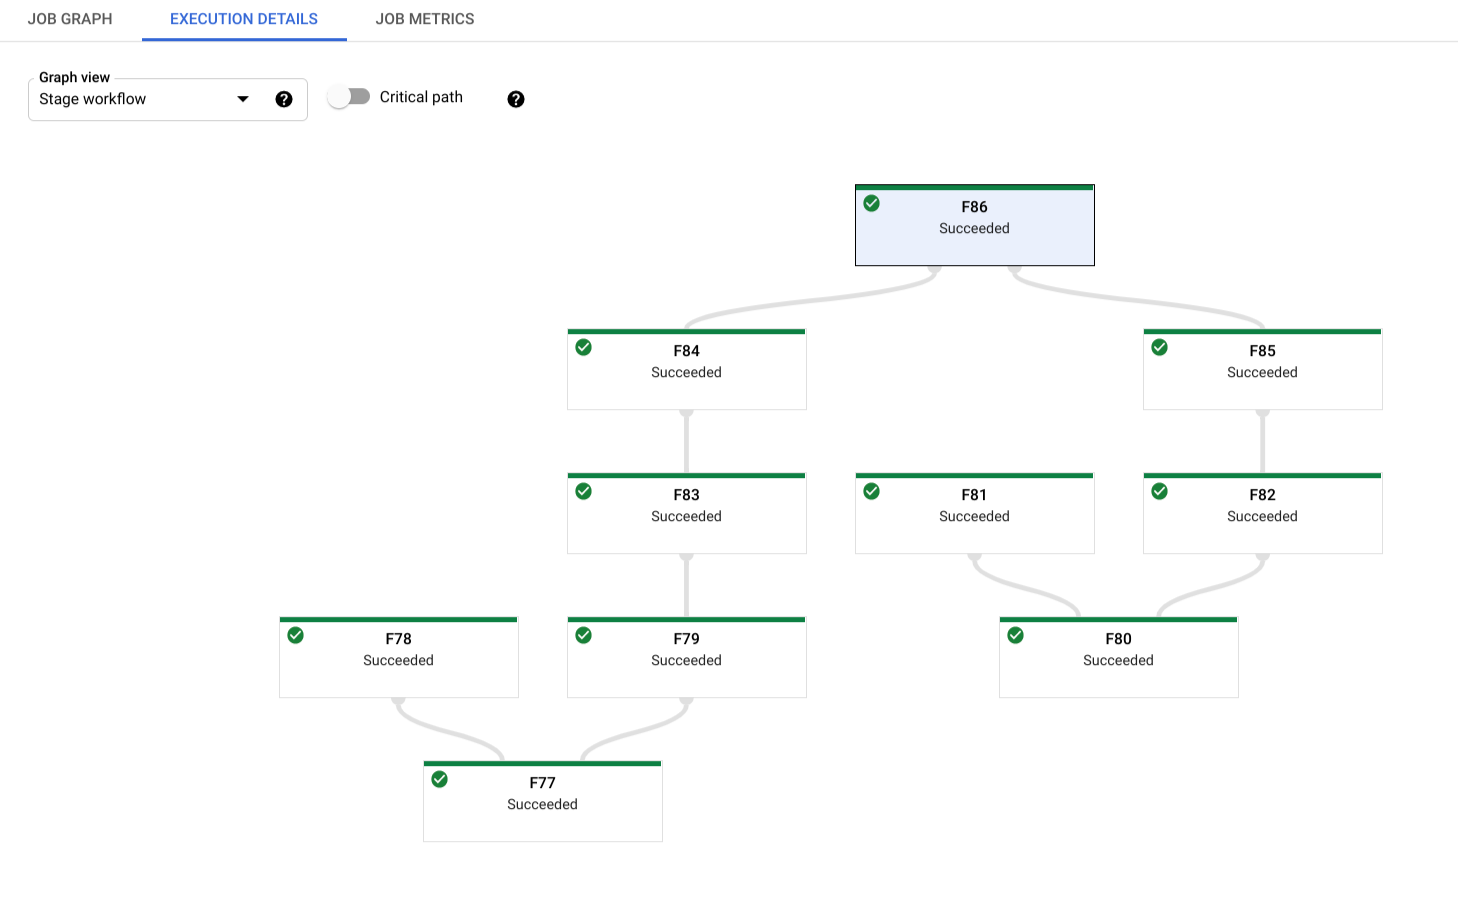 An example of the Stage workflow view, showing the hierarchy of the different execution stages of a job.